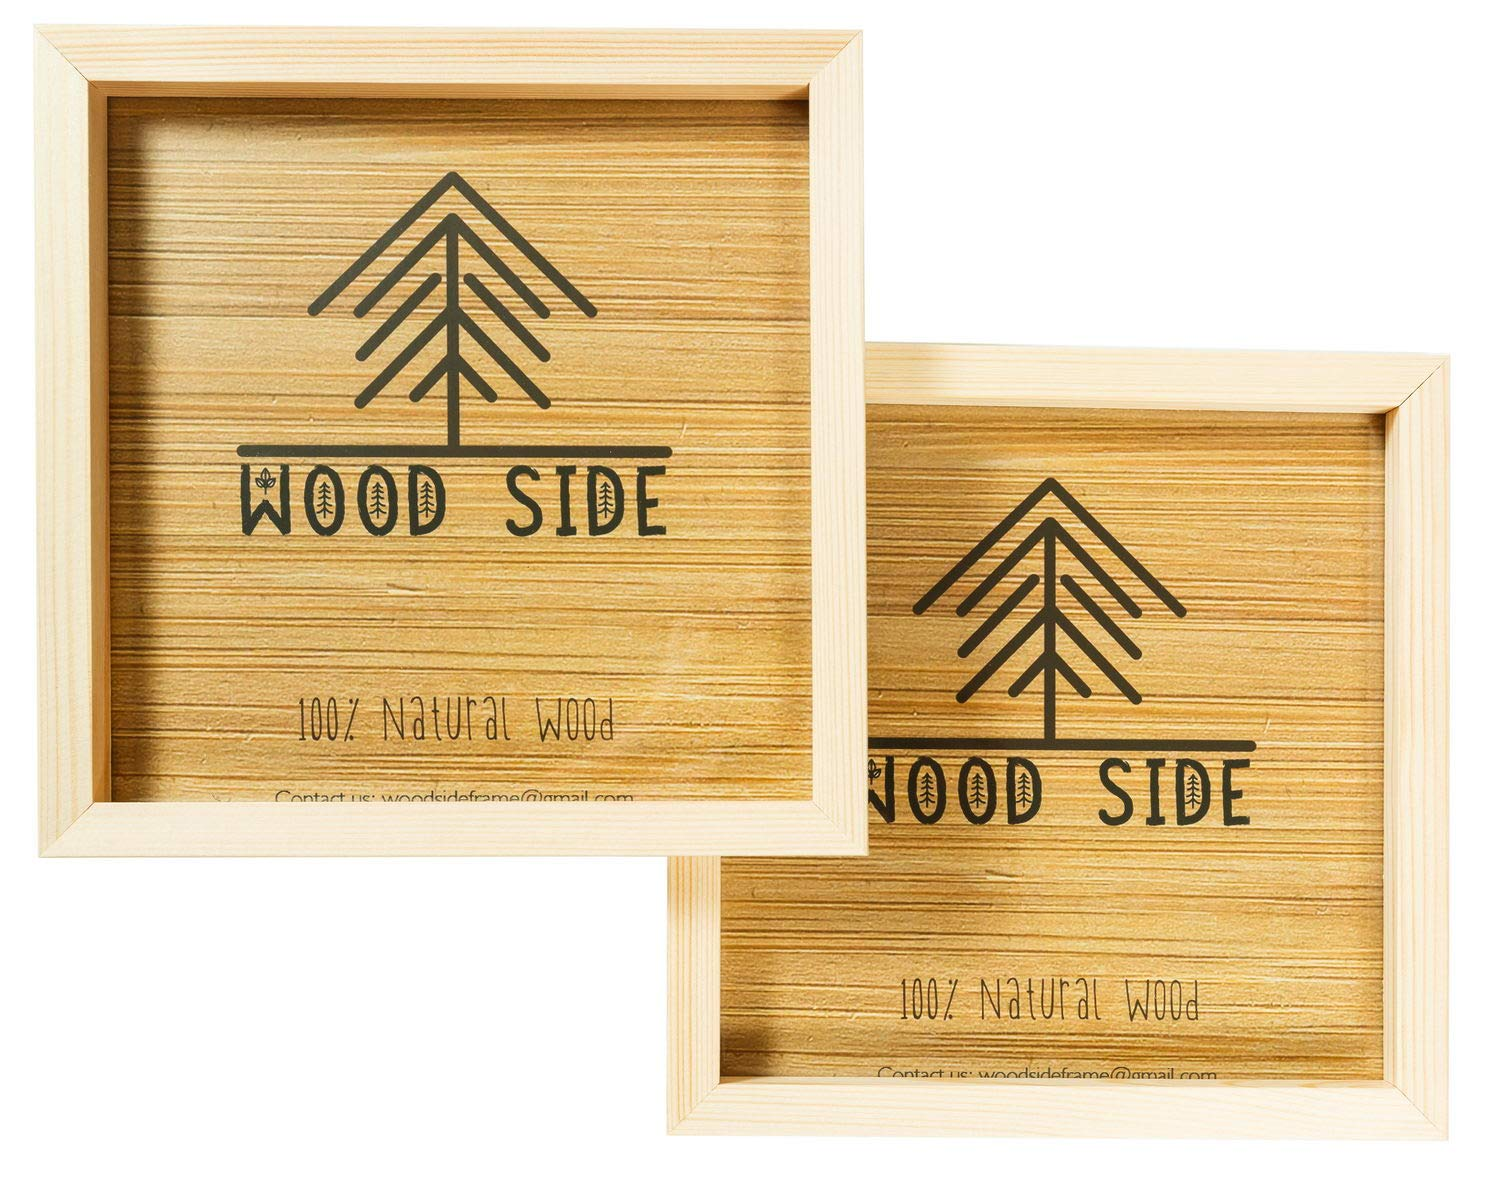 Wooden Square Picture Frames 8x8 inch with Real Glass - Set of 2-100% Eco Unfinished Wood - Thick Borders - Natural Wood Color for Wall Mounting Photo Frame by Wood side